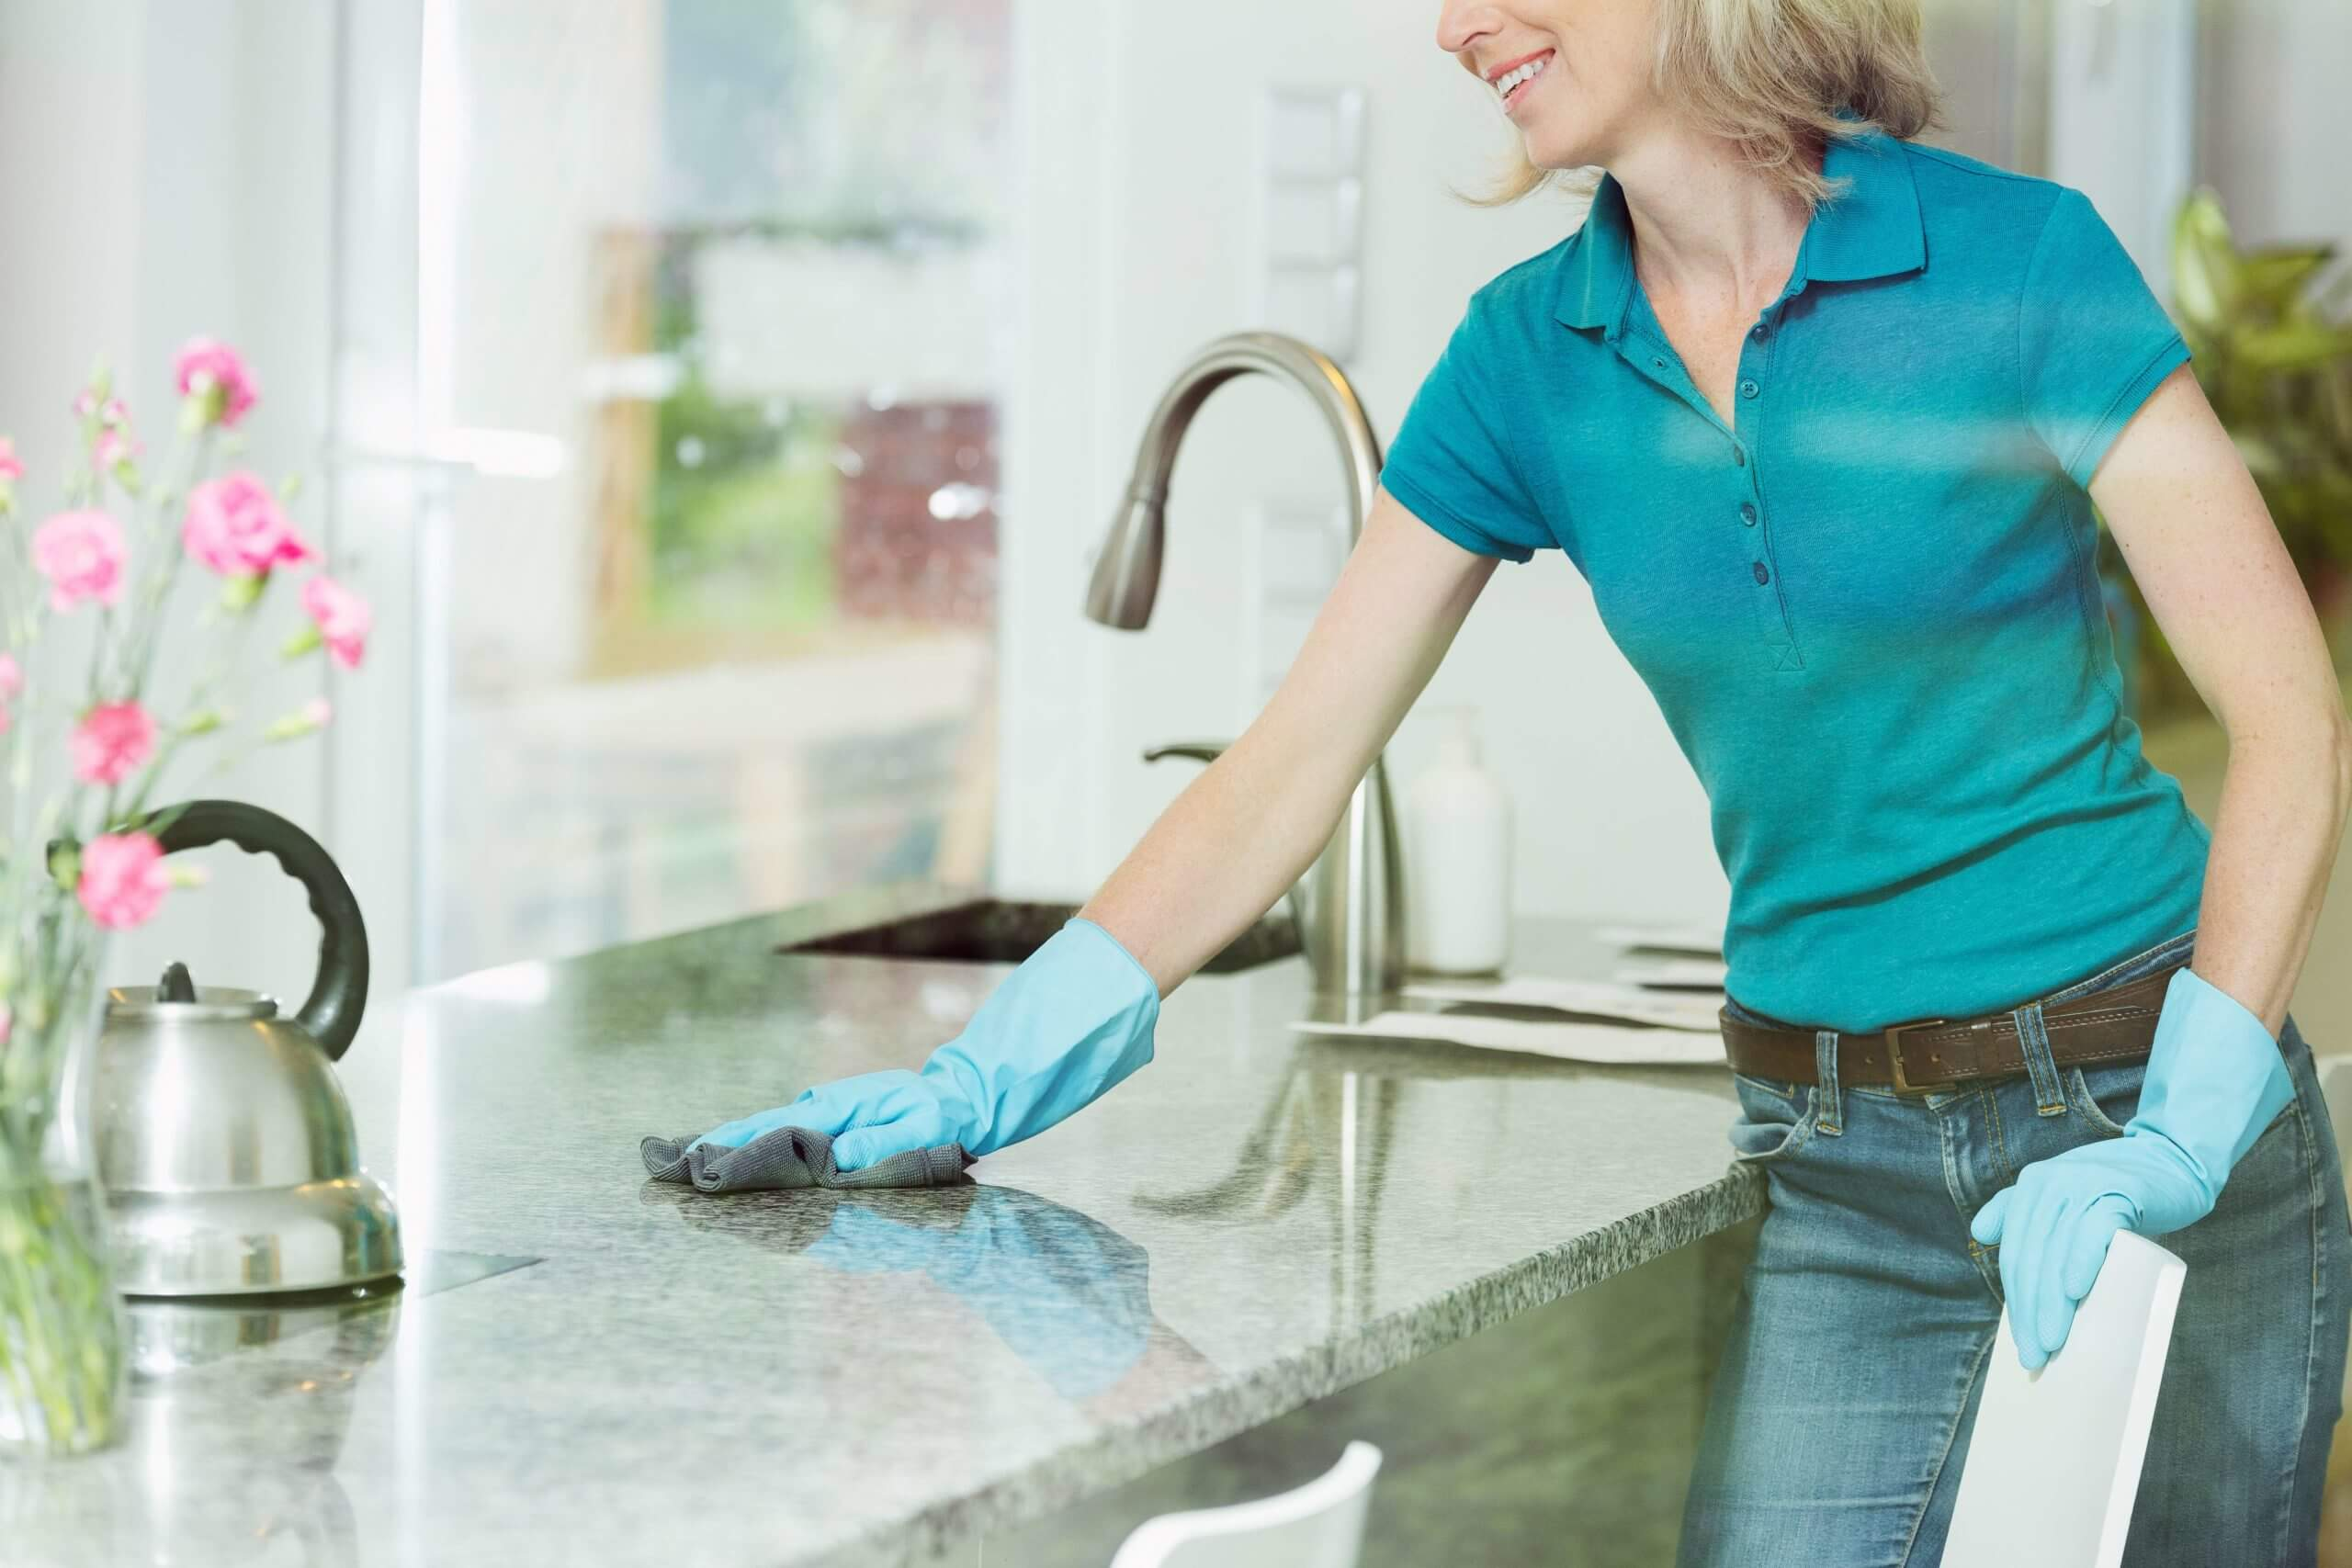 cleaning stone kitchen surface